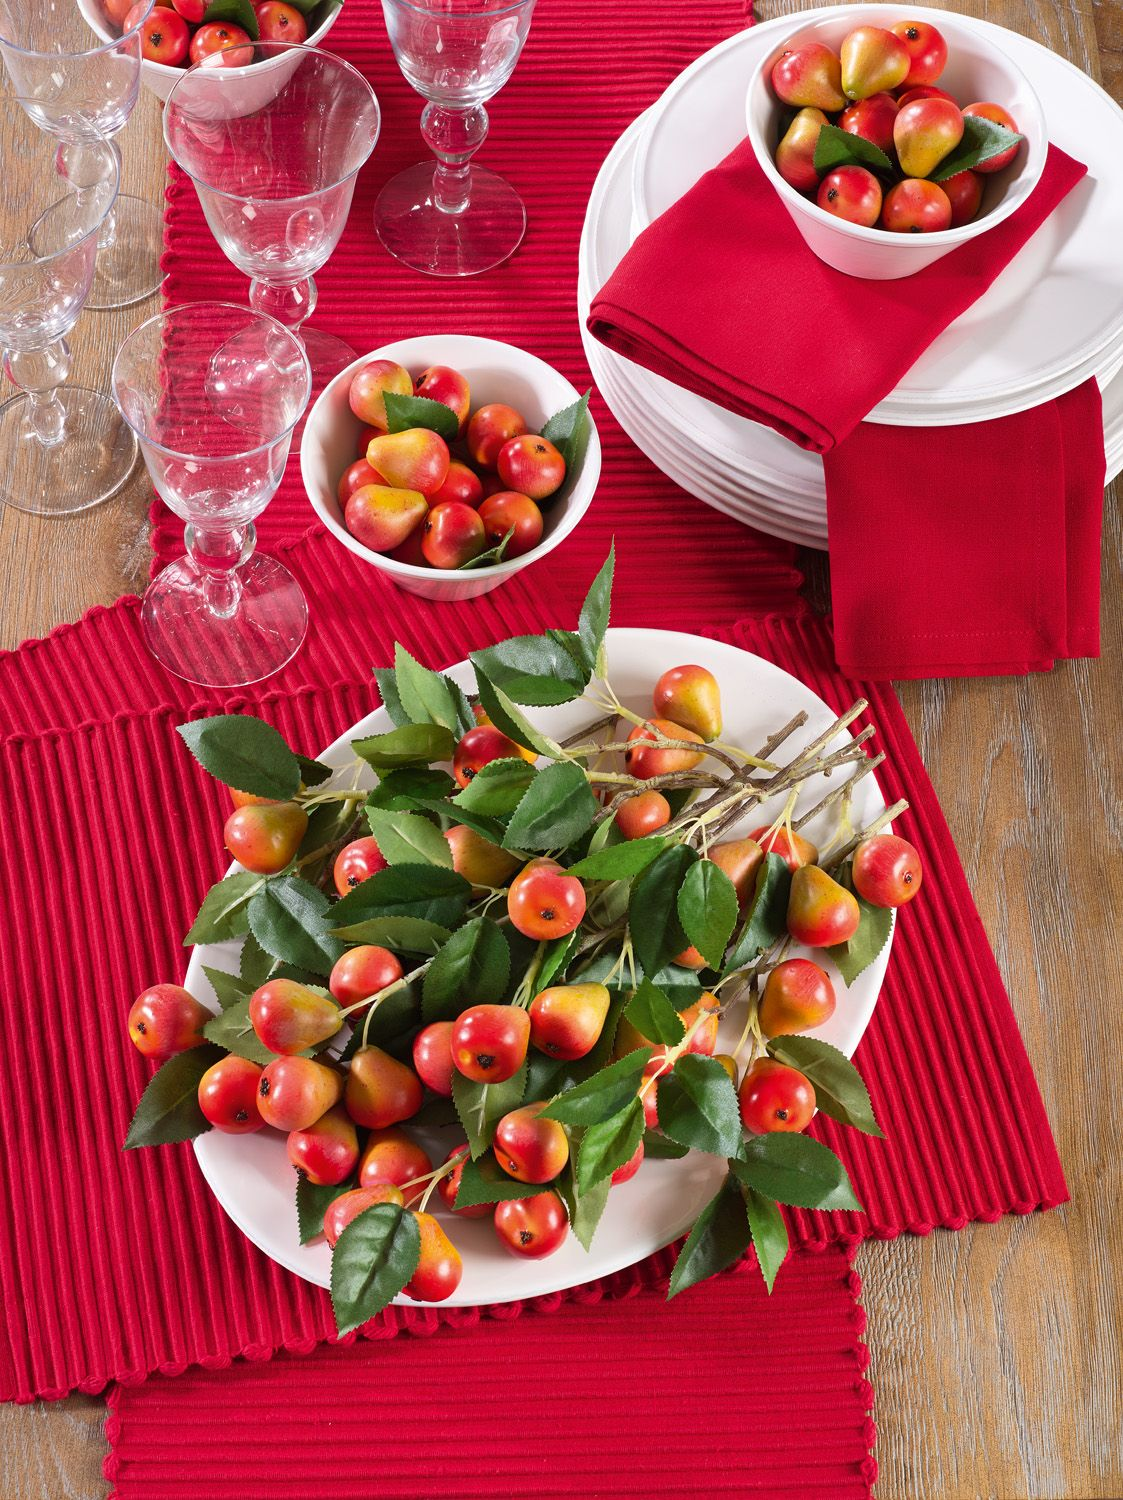 Franboler Collection In Red Red Table Runner Christmas Leaf Tablecloth Saro Lifestyle